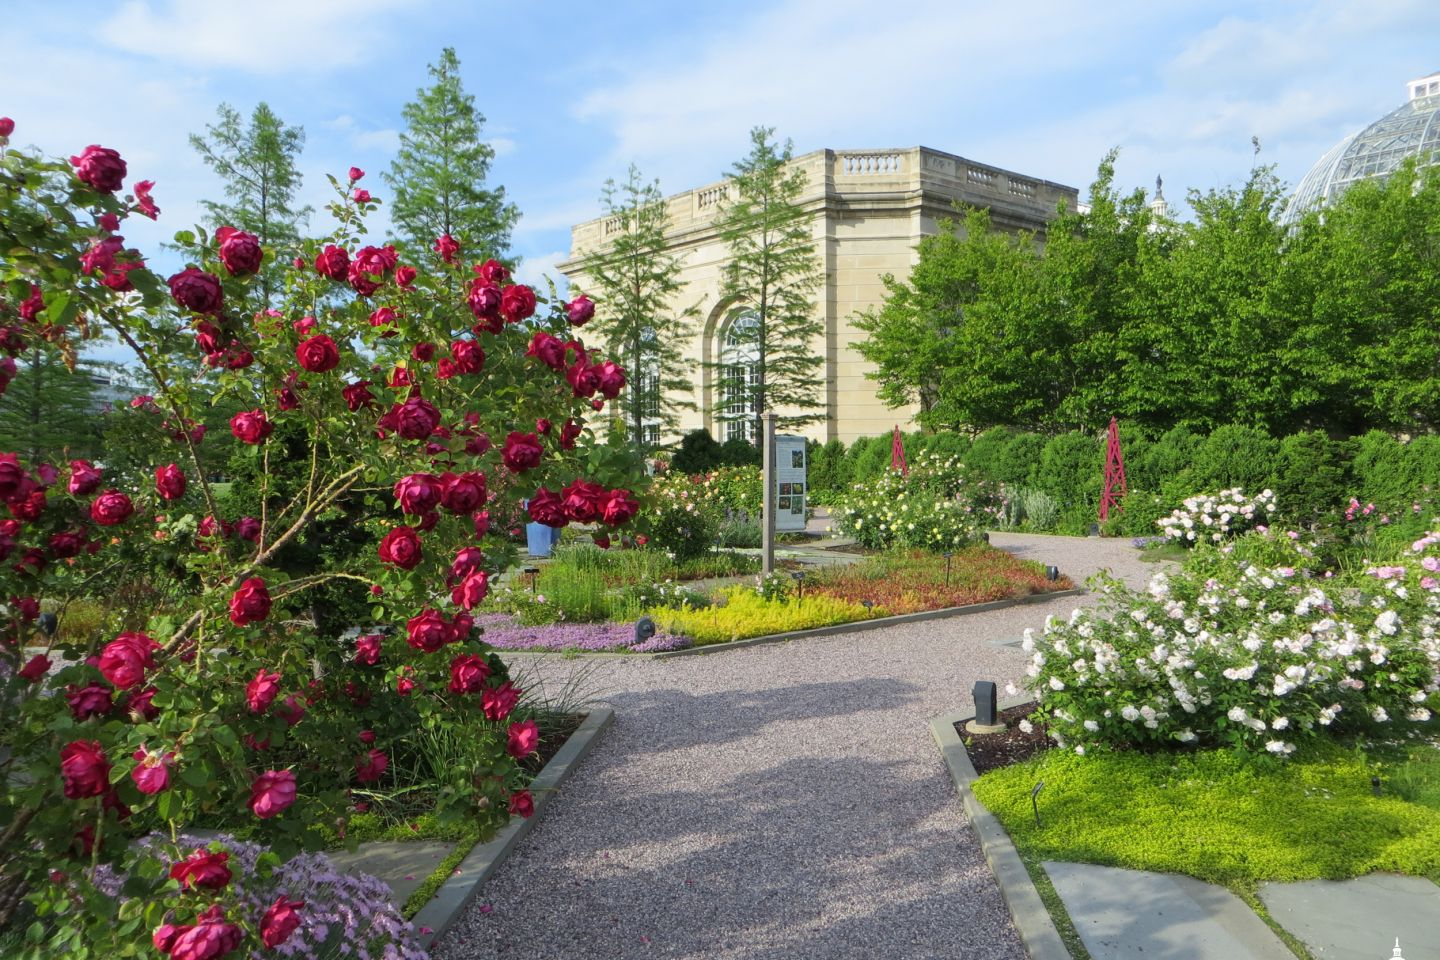 The Rose Garden with the Botanic Garden Conservatory in the background.